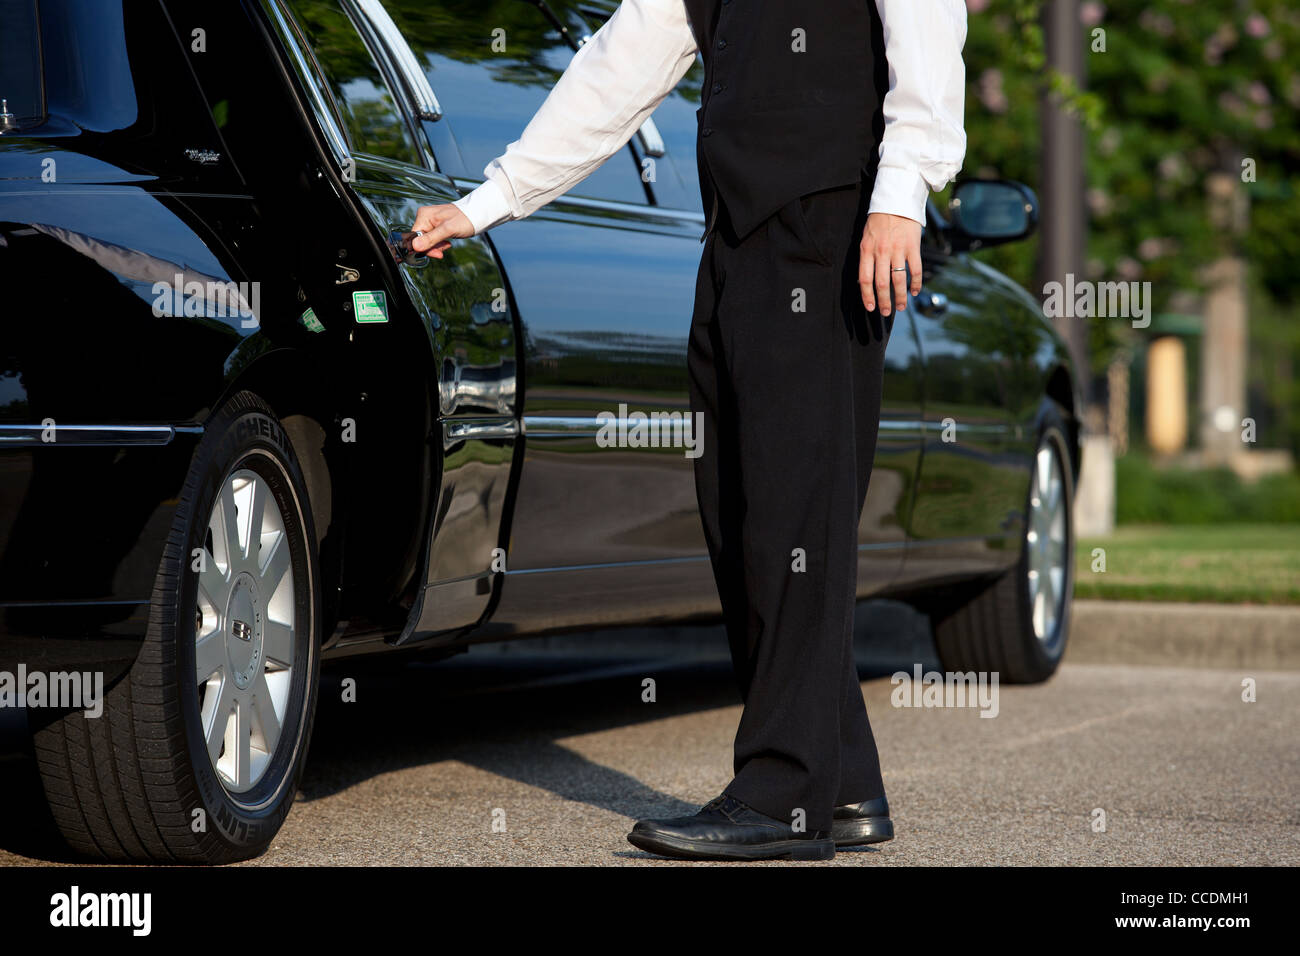 a-chauffeur-opens-the-door-of-a-limousin